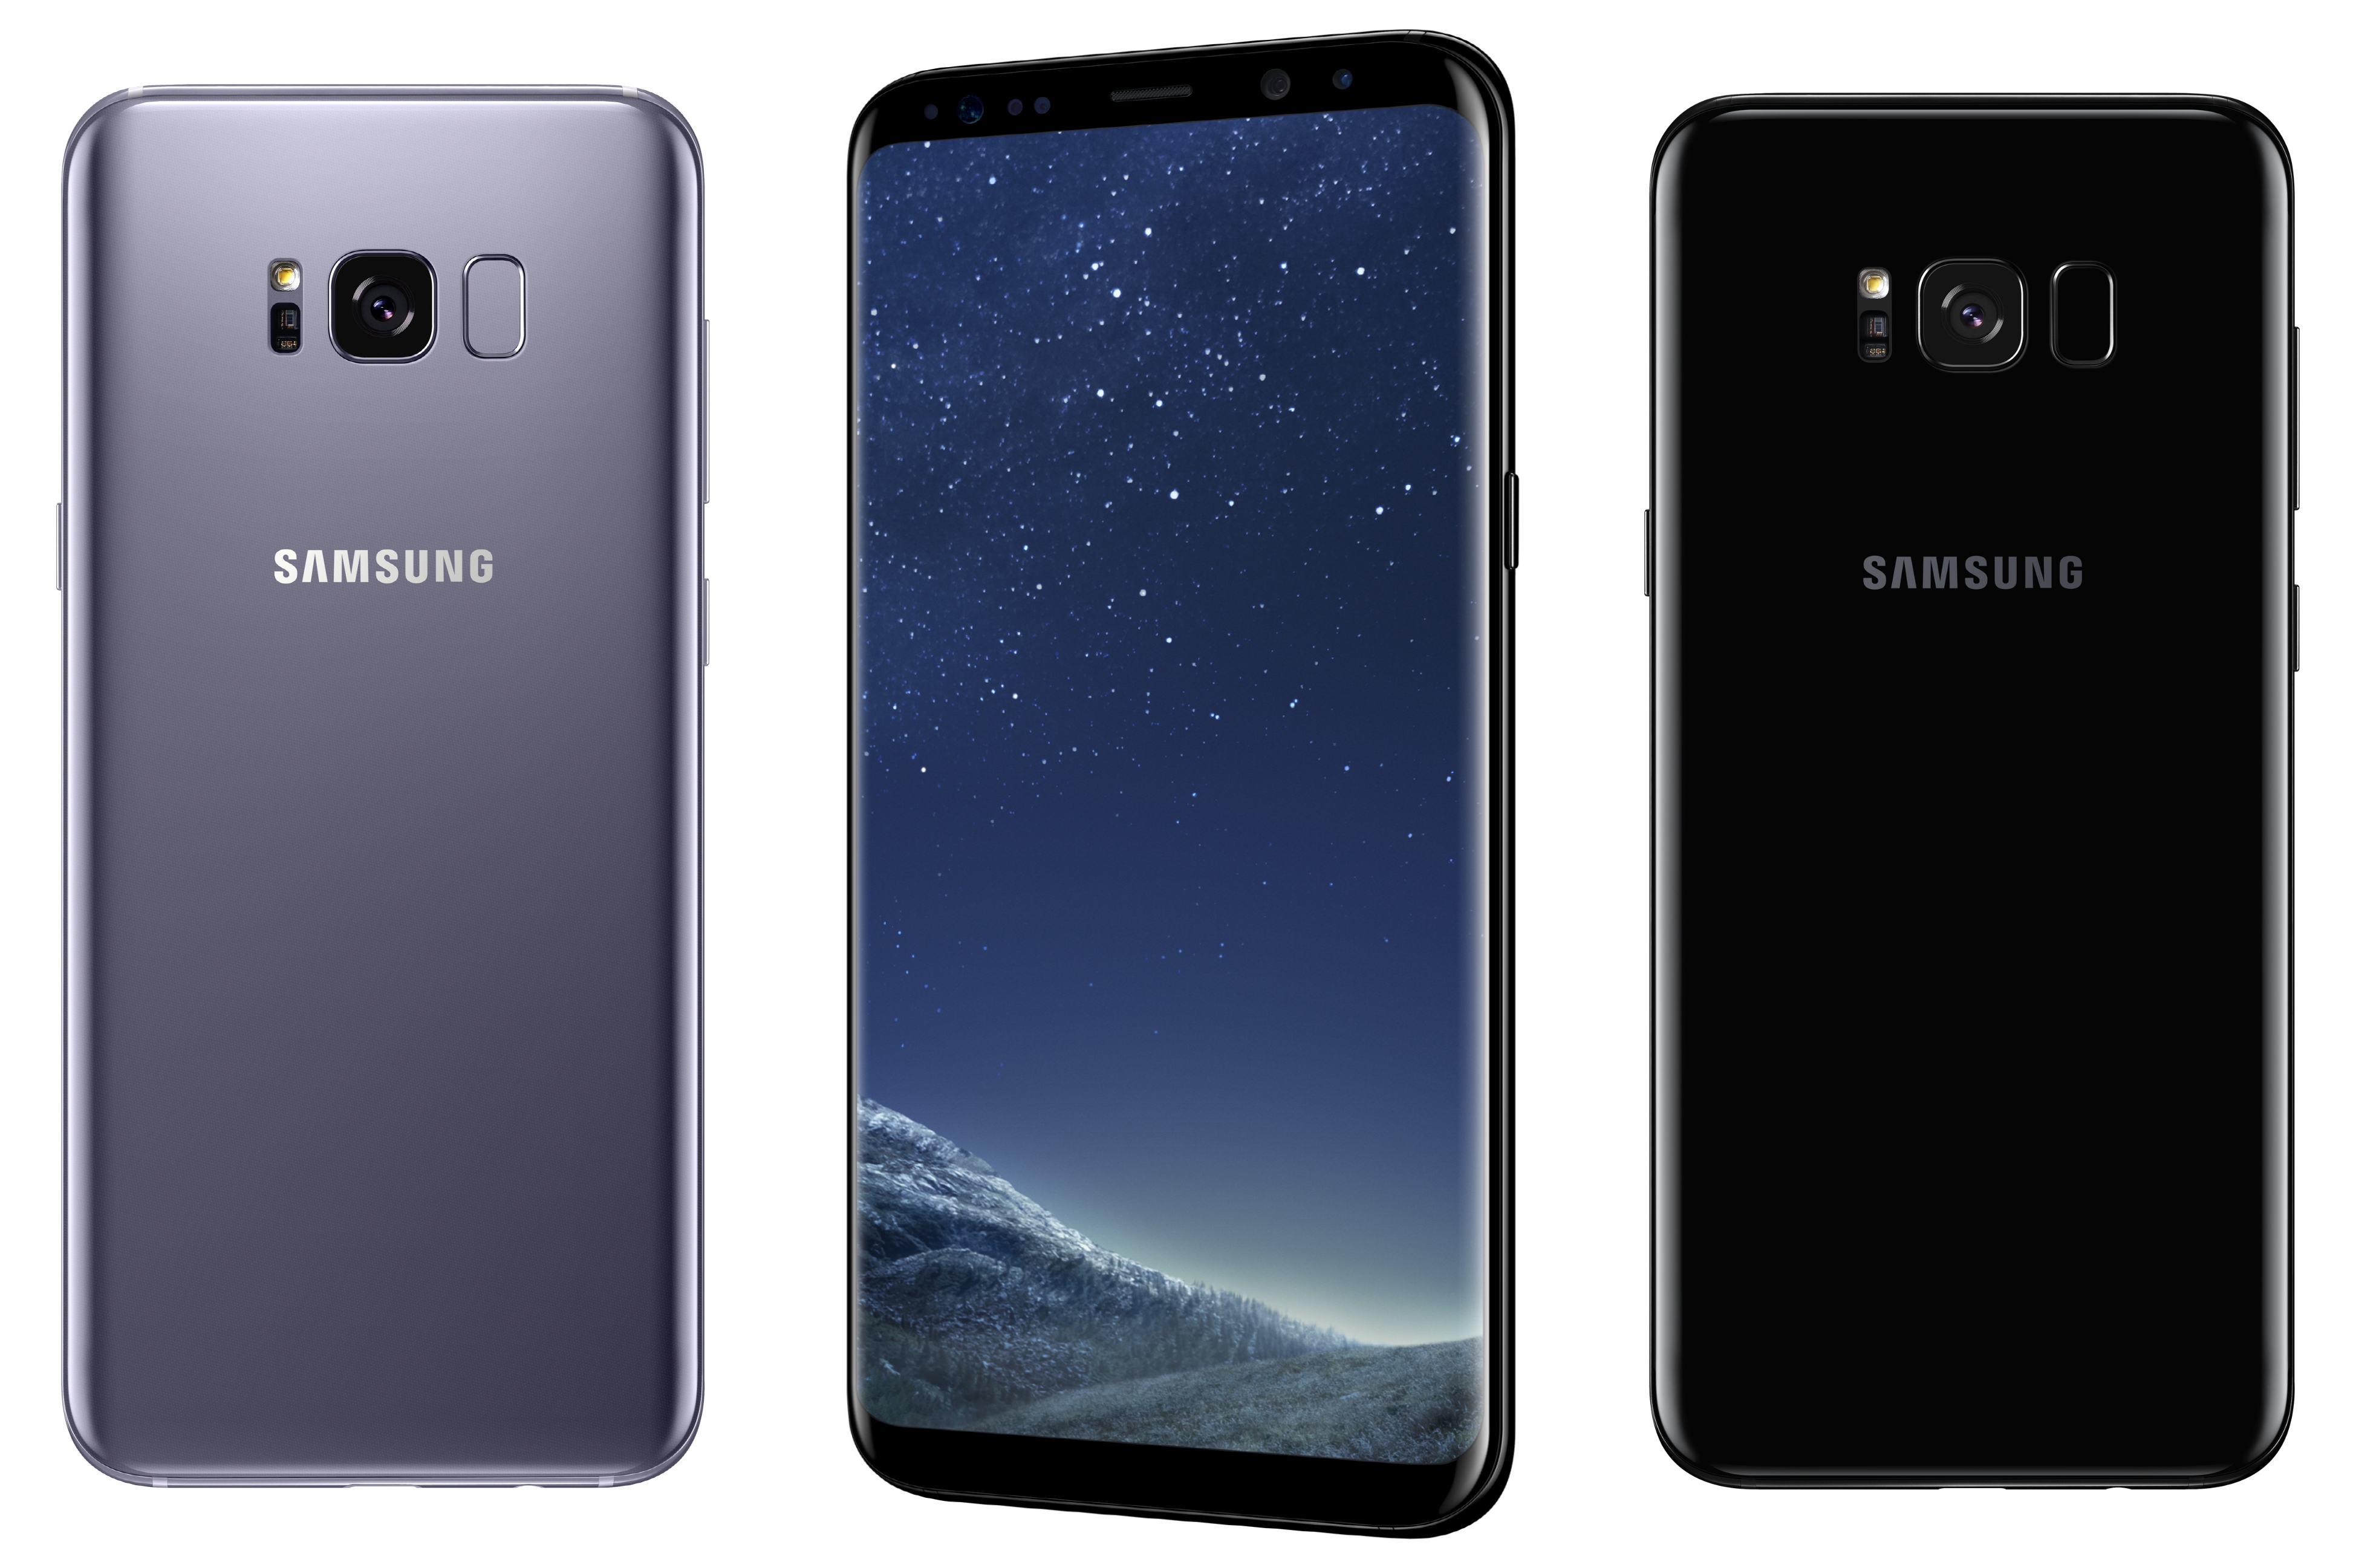 samsung unveils galaxy s8 and s8 launches vr content service mobile marketing magazine. Black Bedroom Furniture Sets. Home Design Ideas